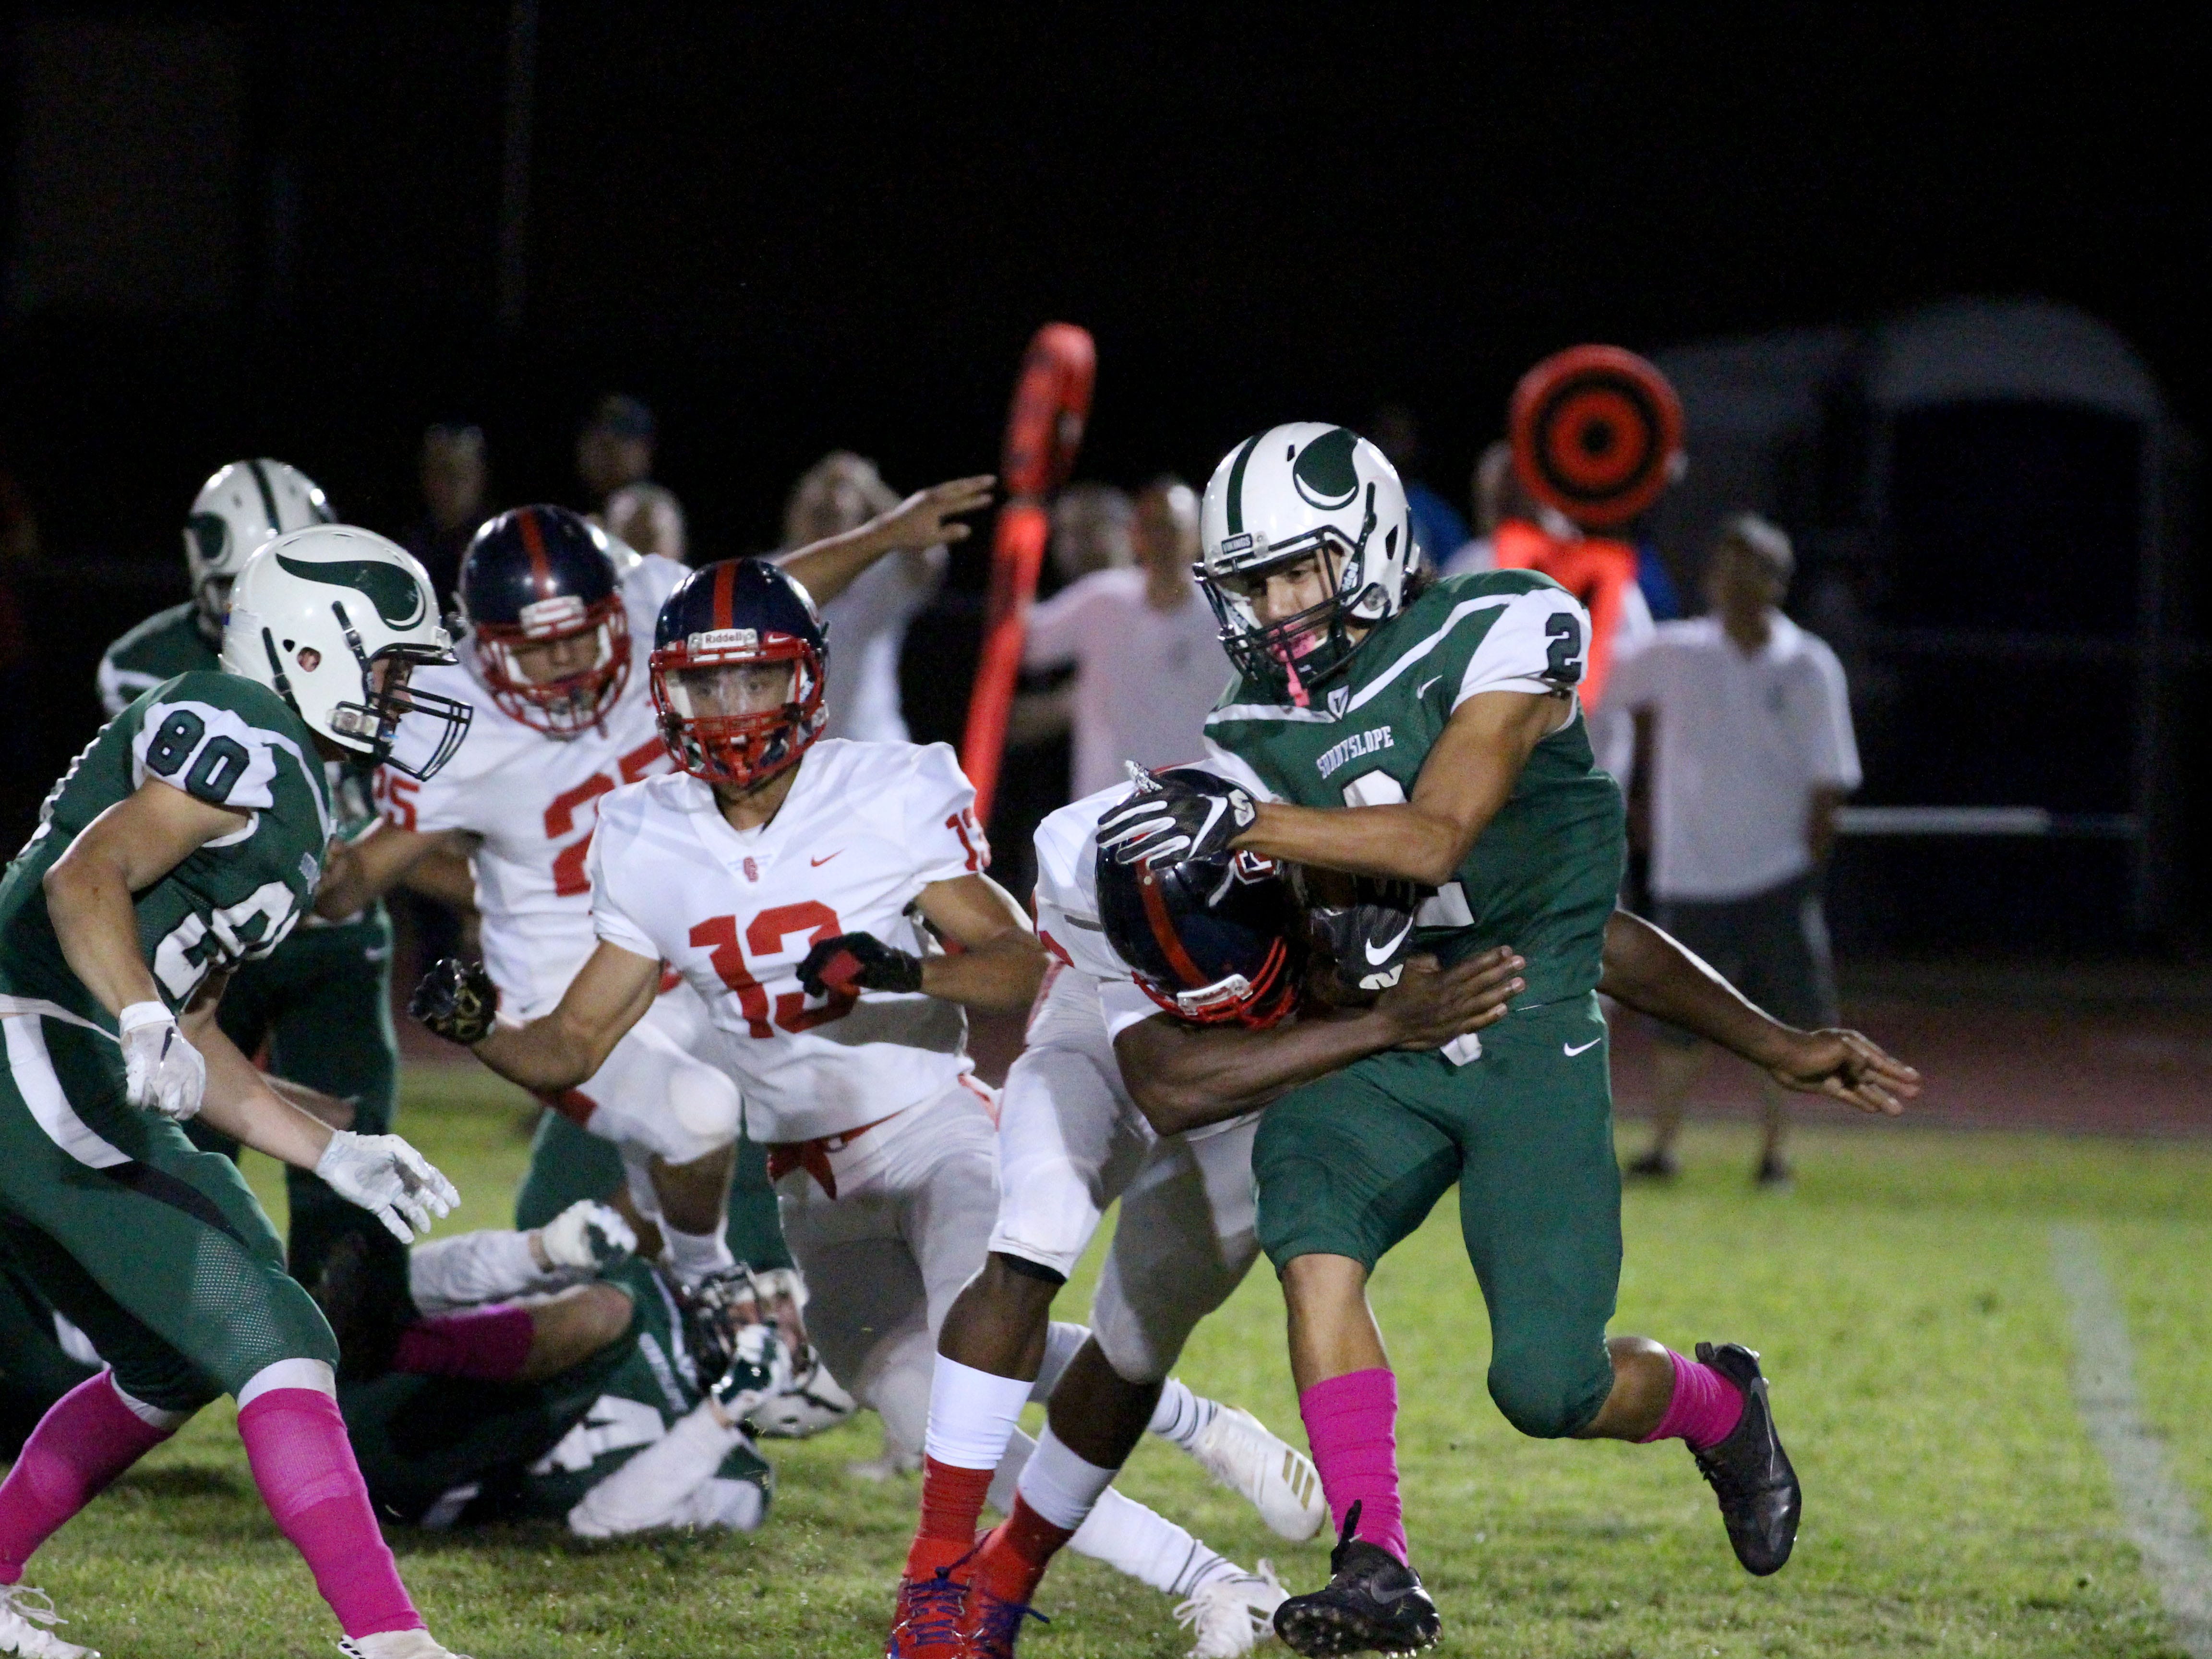 Sunnyslope's Eliah Rodriguez breaks a Centennial tackle on Friday night at Sunnyslope High School on Oct. 5, 2018